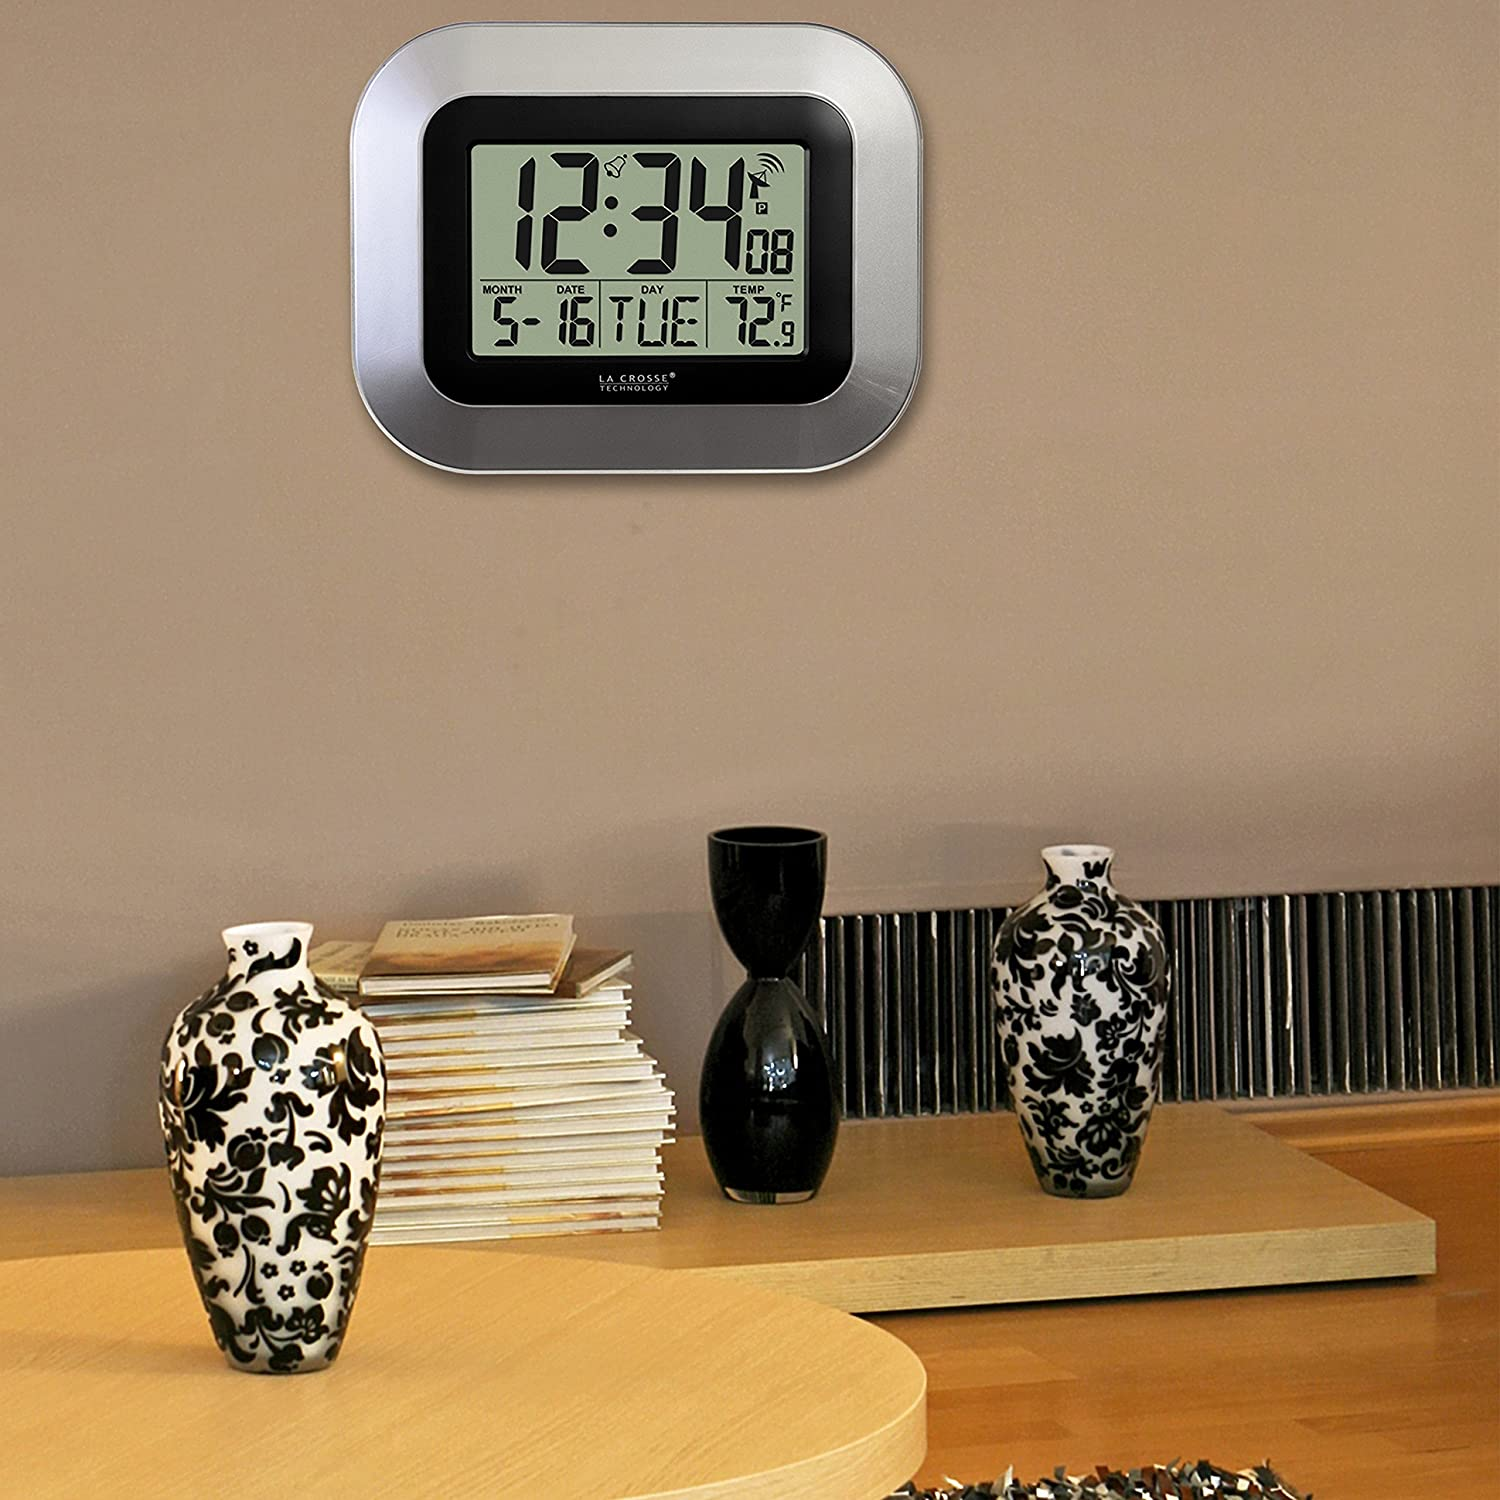 Charmant Amazon.com: La Crosse Technology WT 8005U S Atomic Digital Wall Clock With  Indoor Temperature, Silver: Home U0026 Kitchen